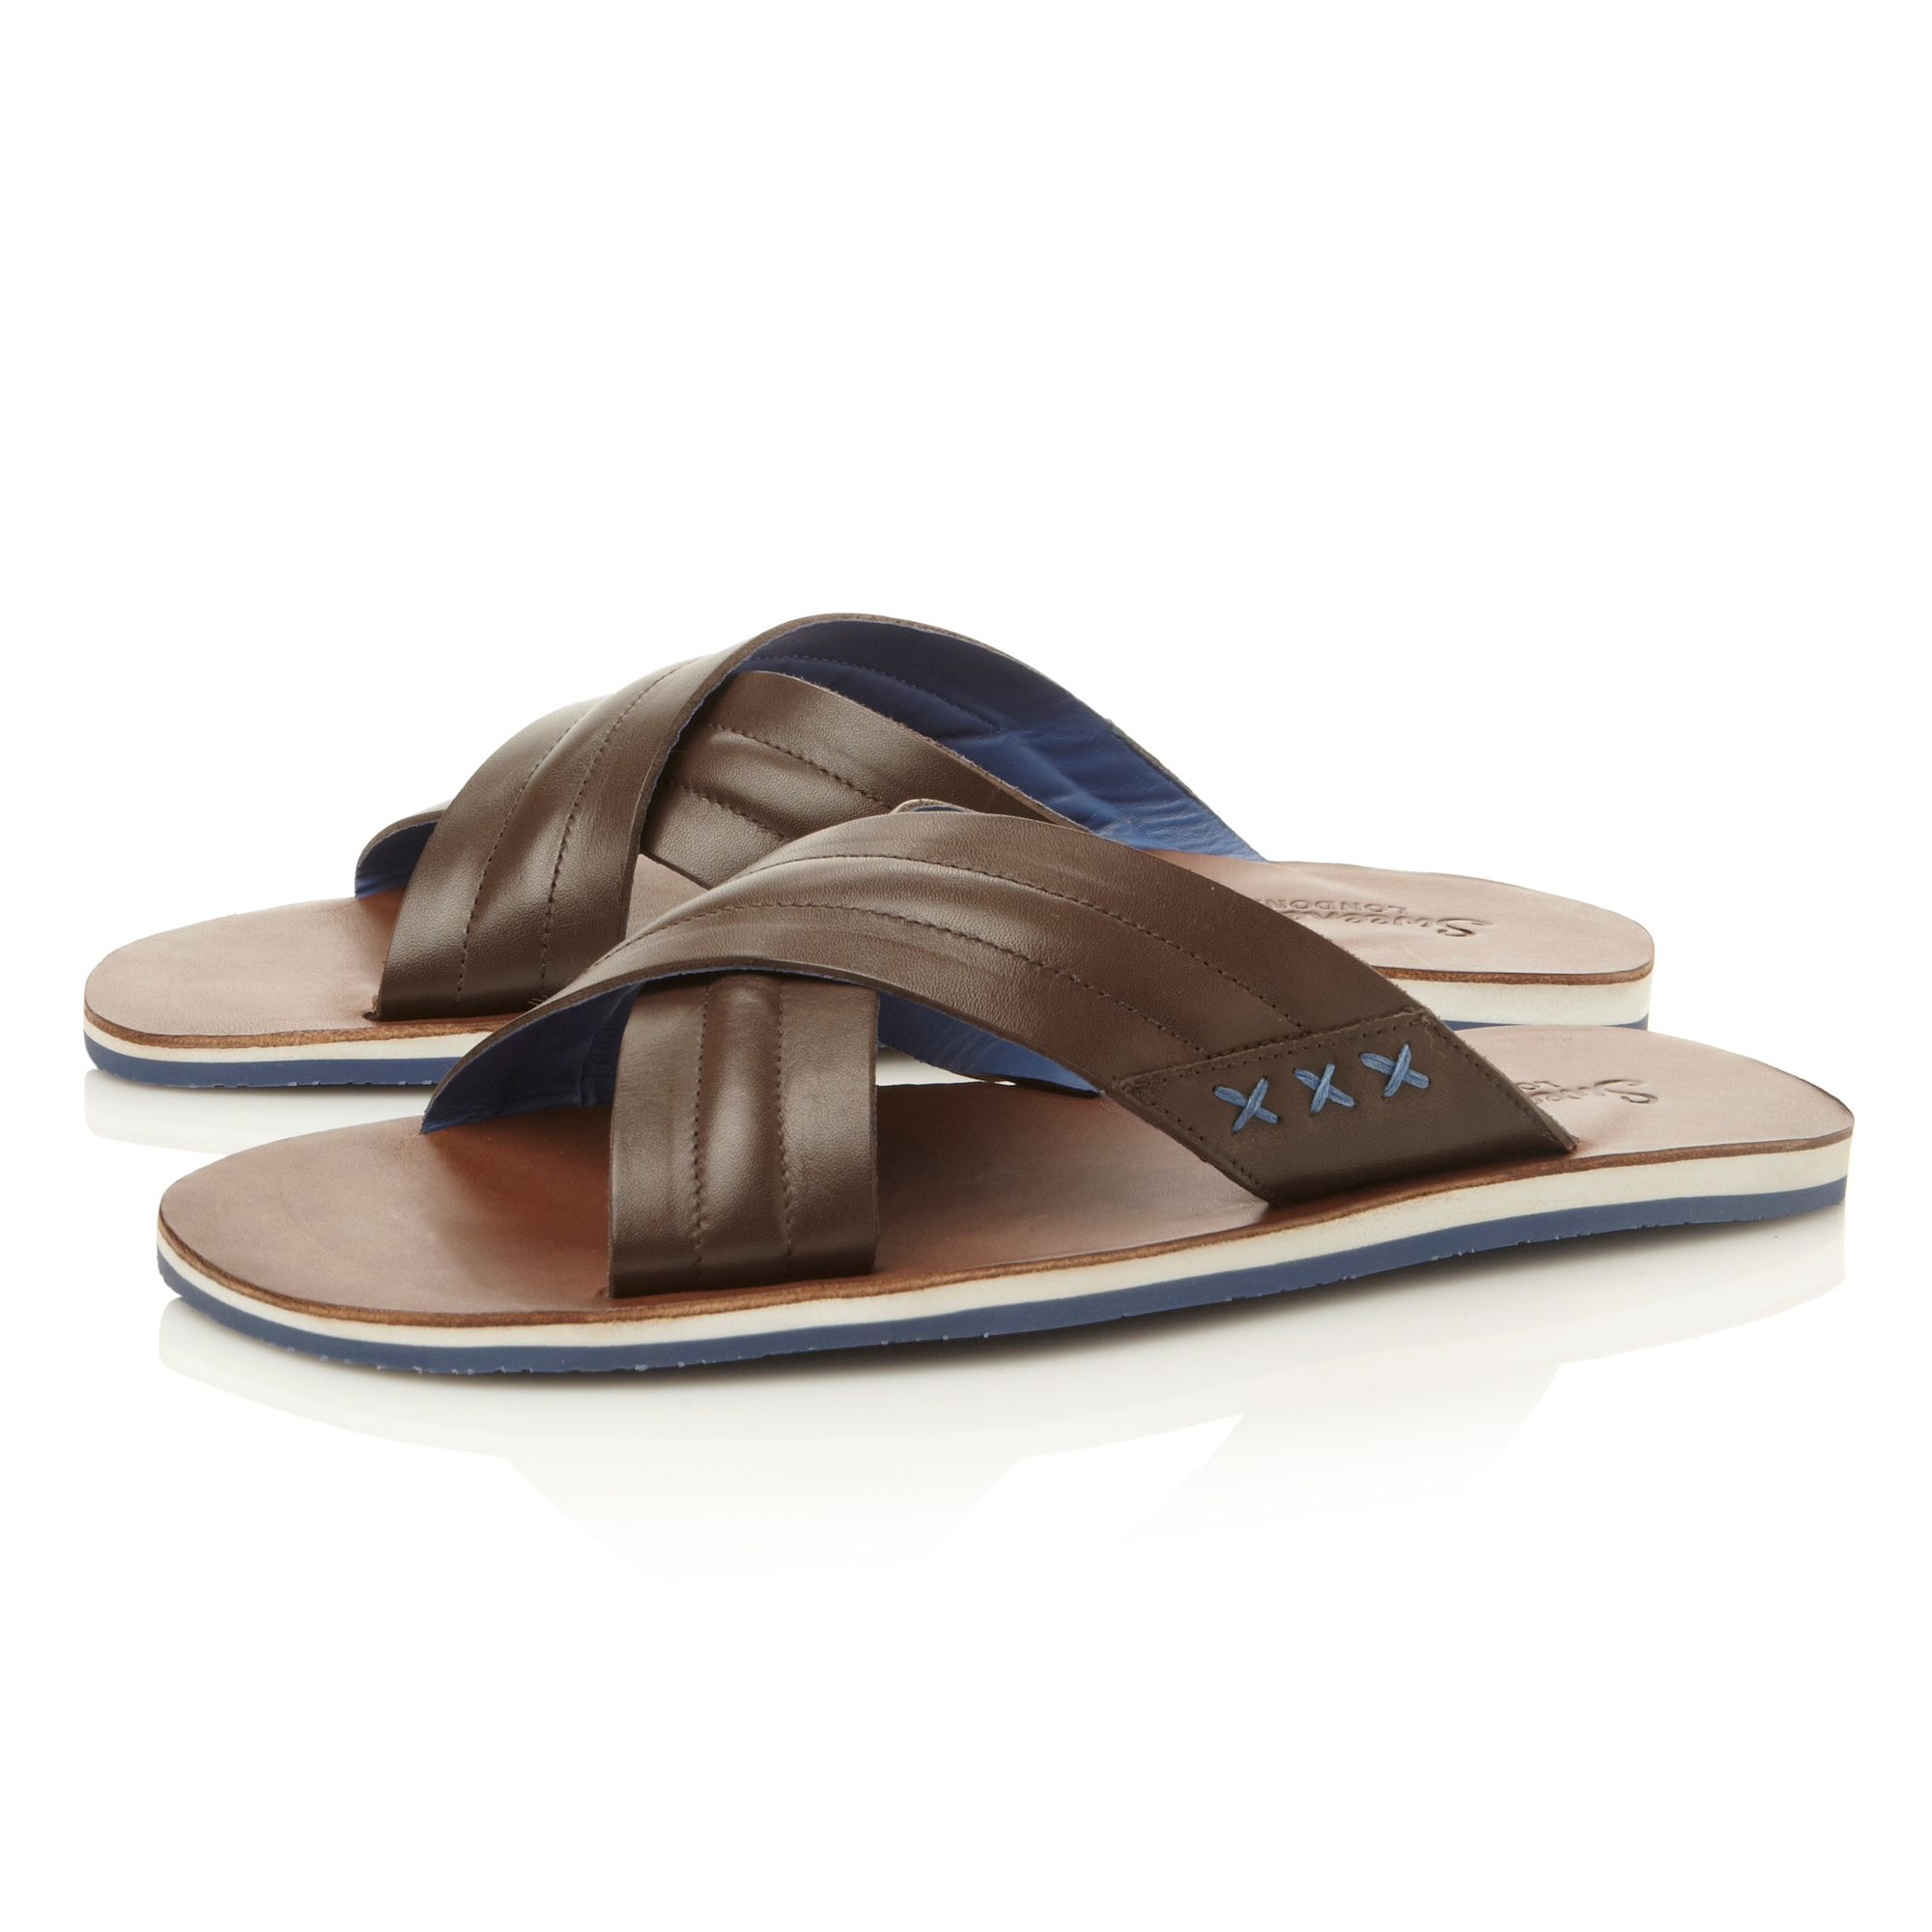 Ternes  leather crossover sandals